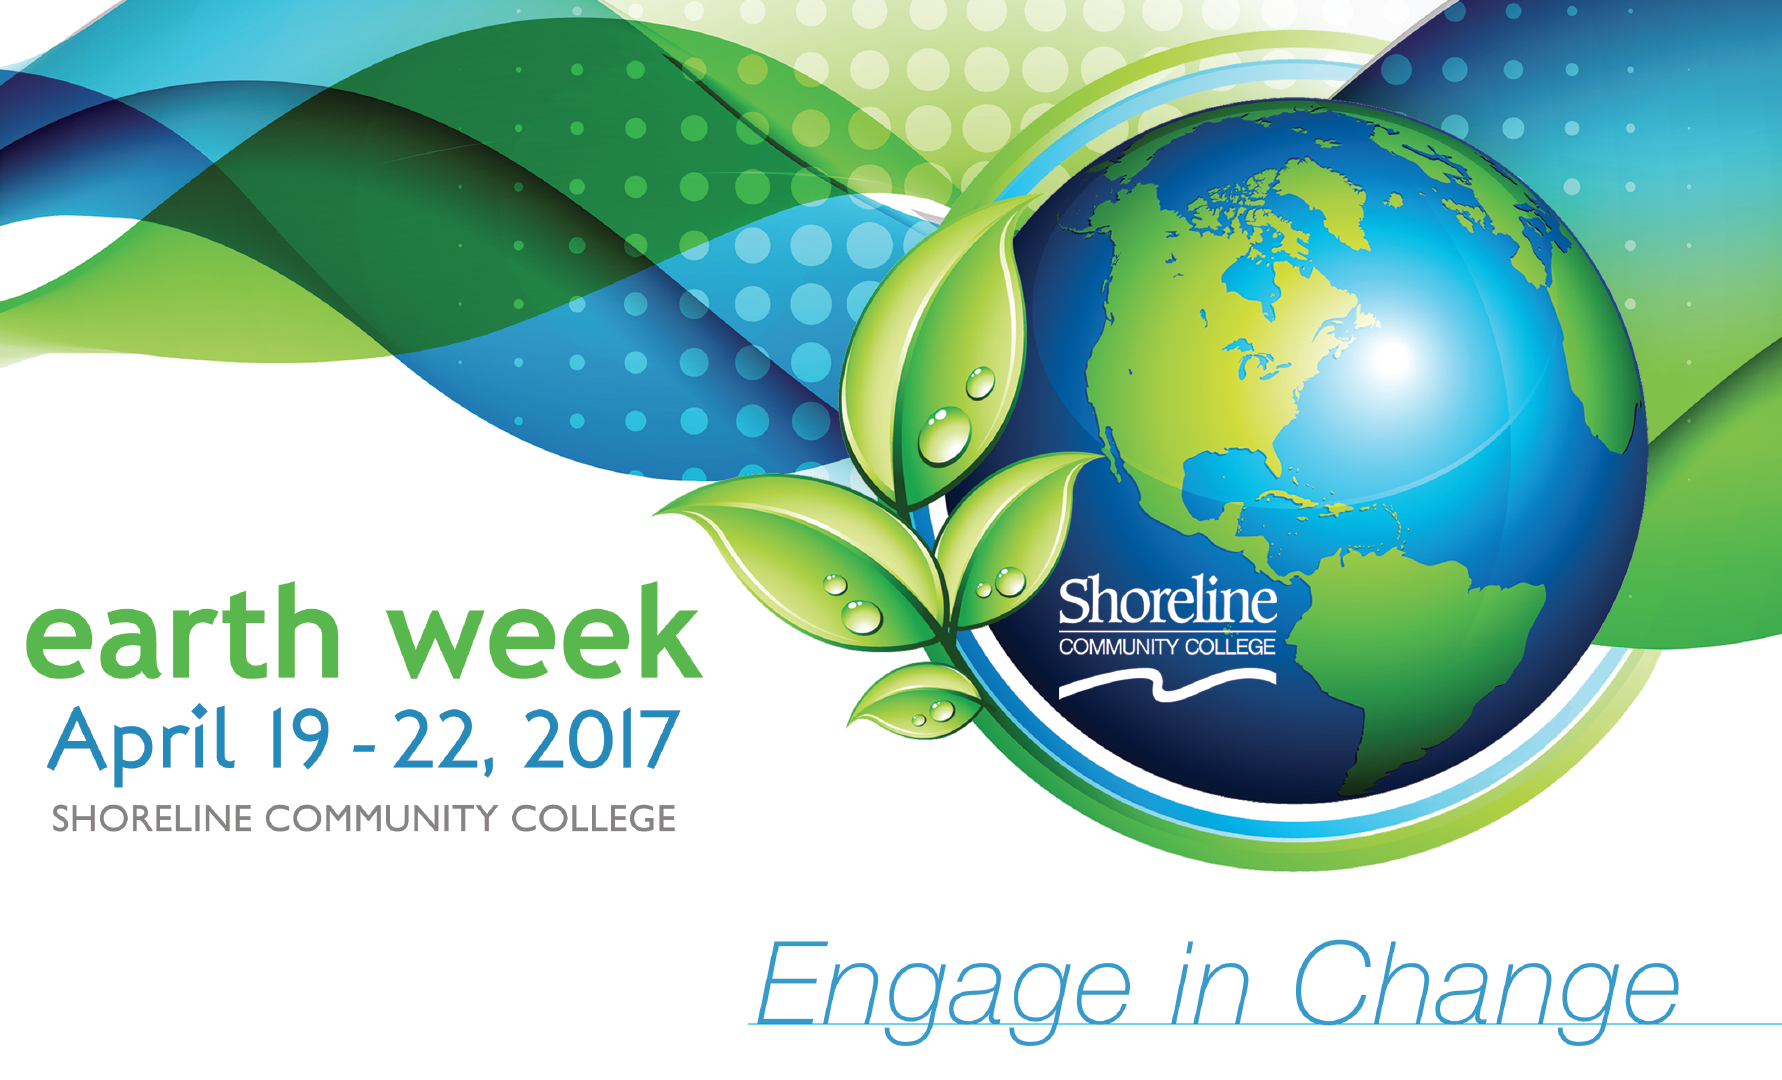 Earth Week 2017 schedule of events – Day at a Glance